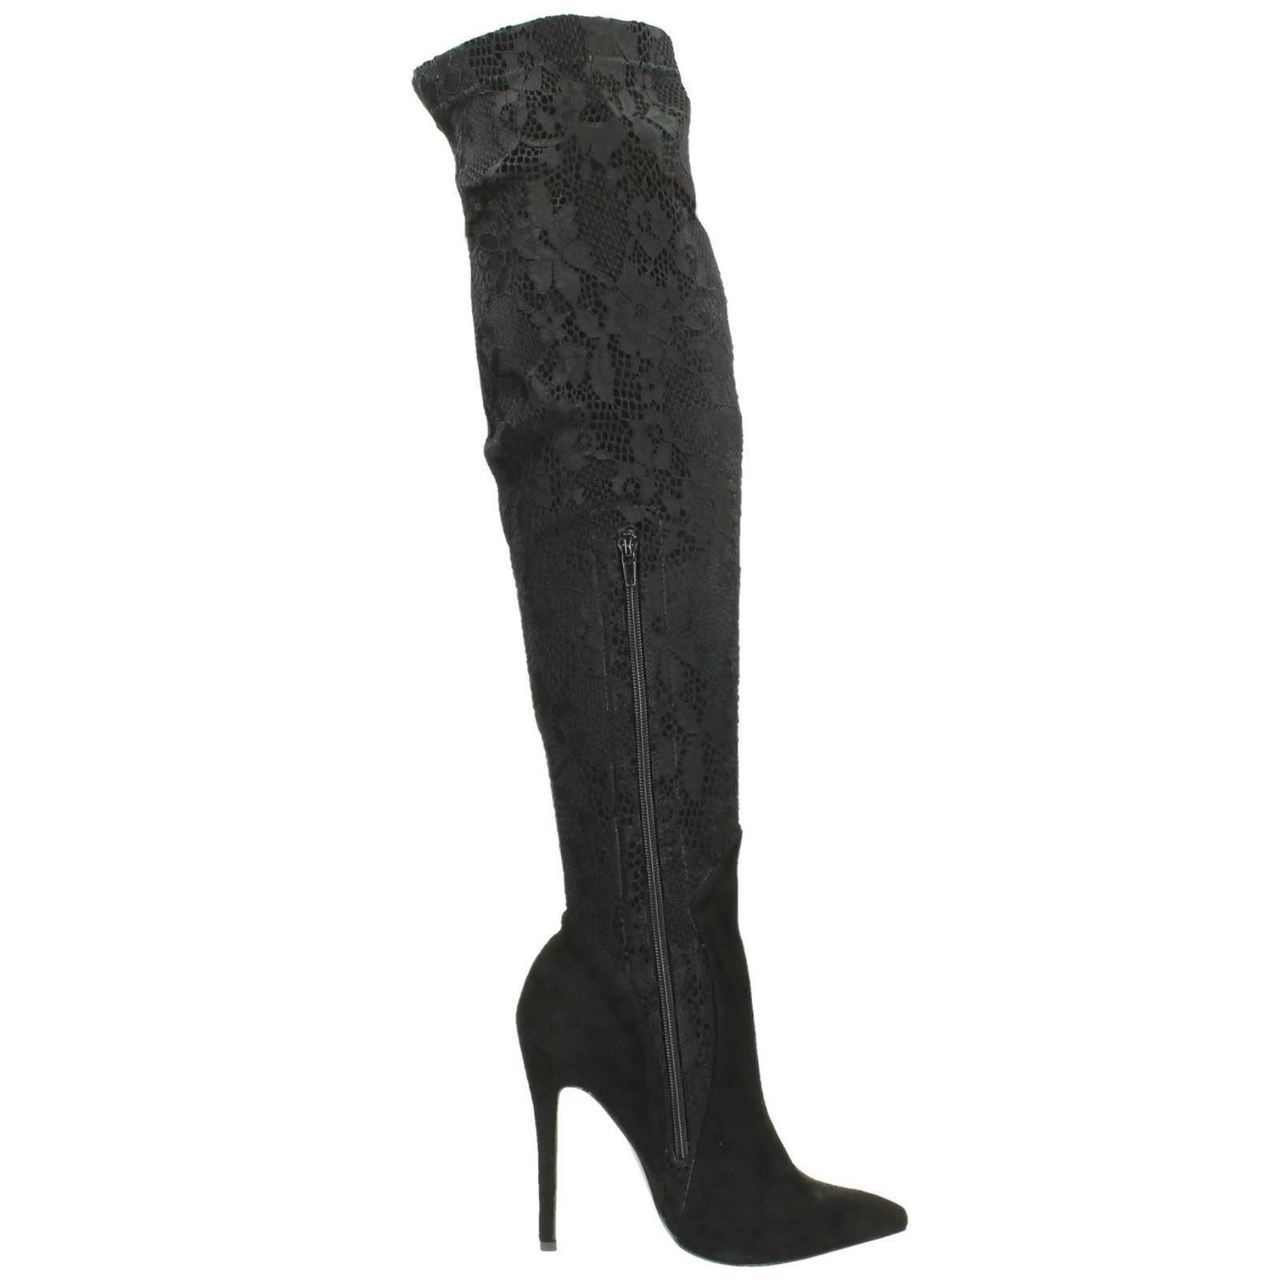 Ladies-Anne-Michelle-Over-The-Knee-High-Boots-Style-F50561